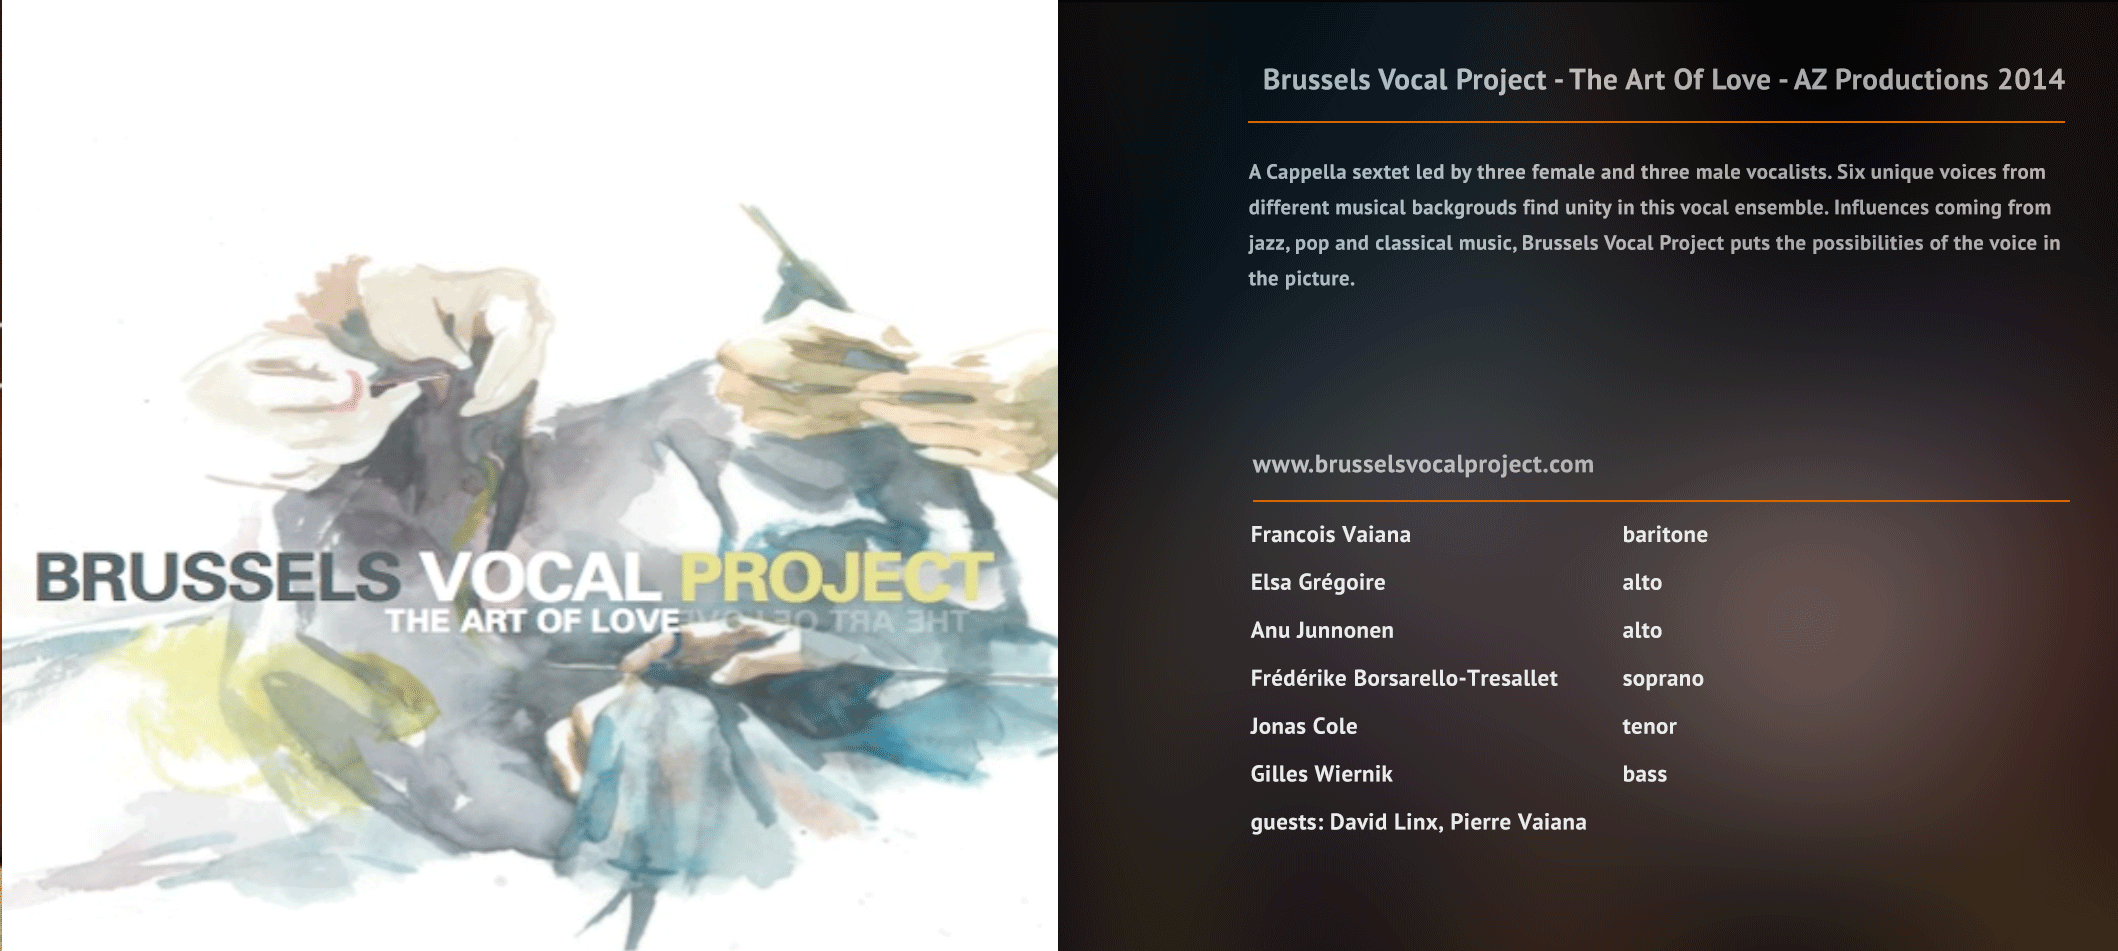 Brussels Vocal Project - The Art Of Love